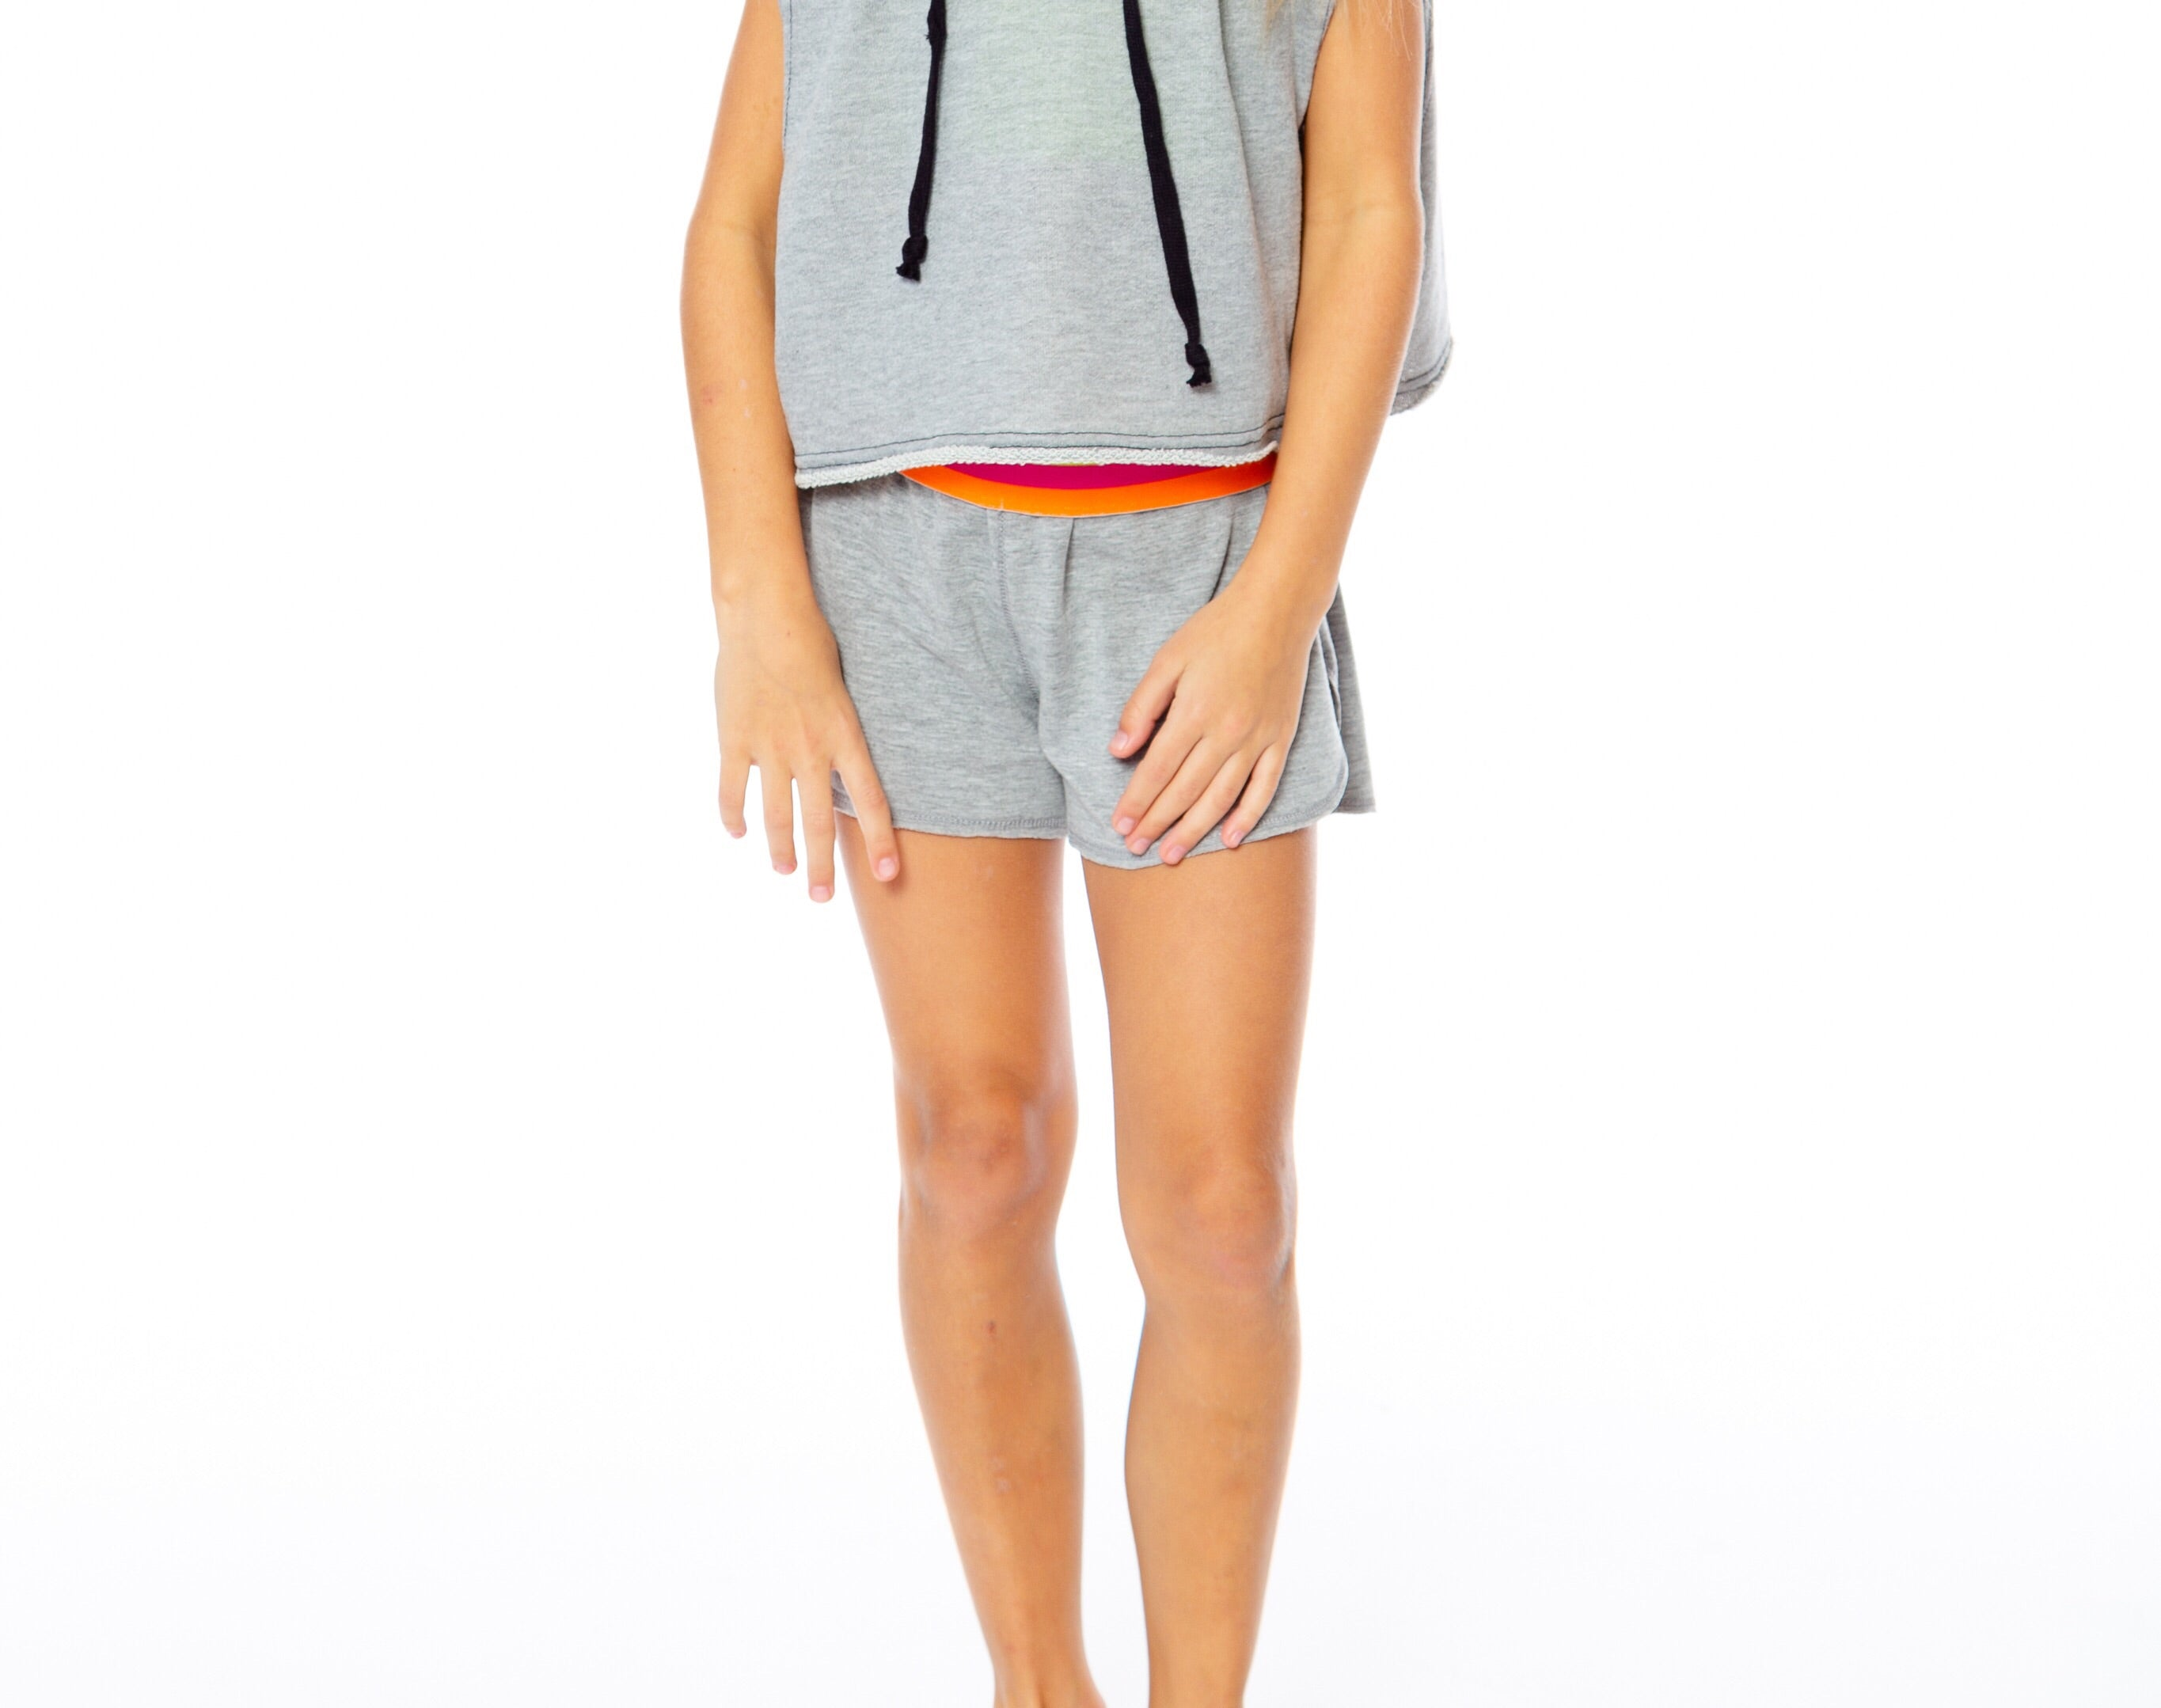 Malibu Sugar Heather Grey Fold Over Shorts with Hot Pink, Orange, Yellow Waist Band